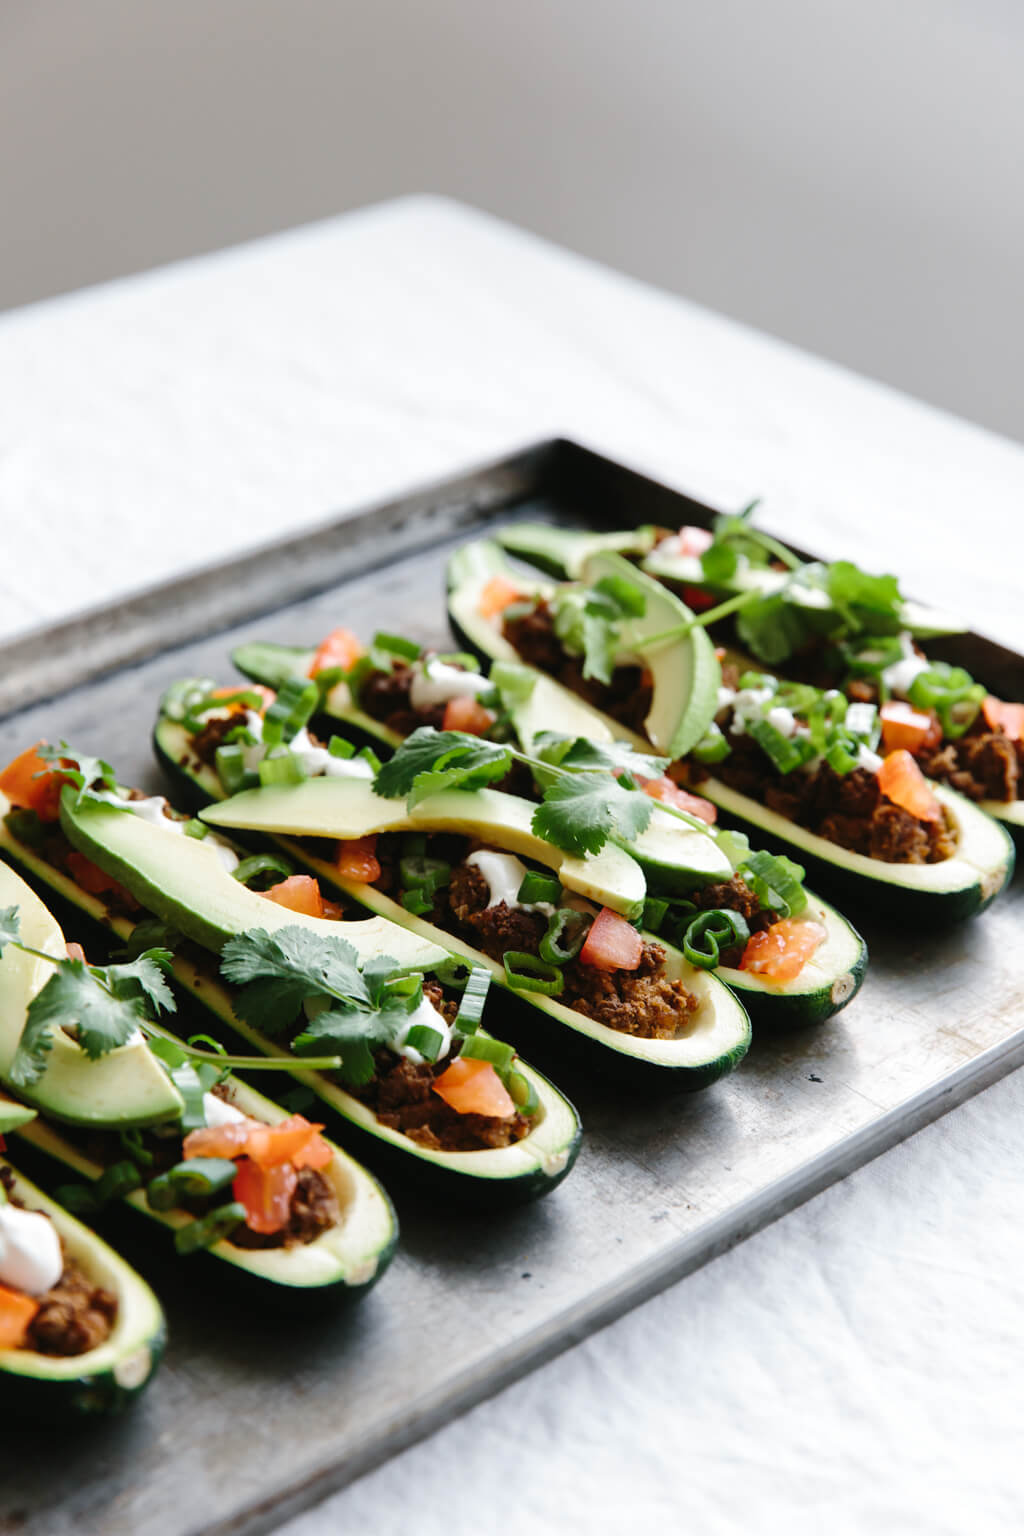 Zucchini boats stuffed with taco filling on a baking tray.